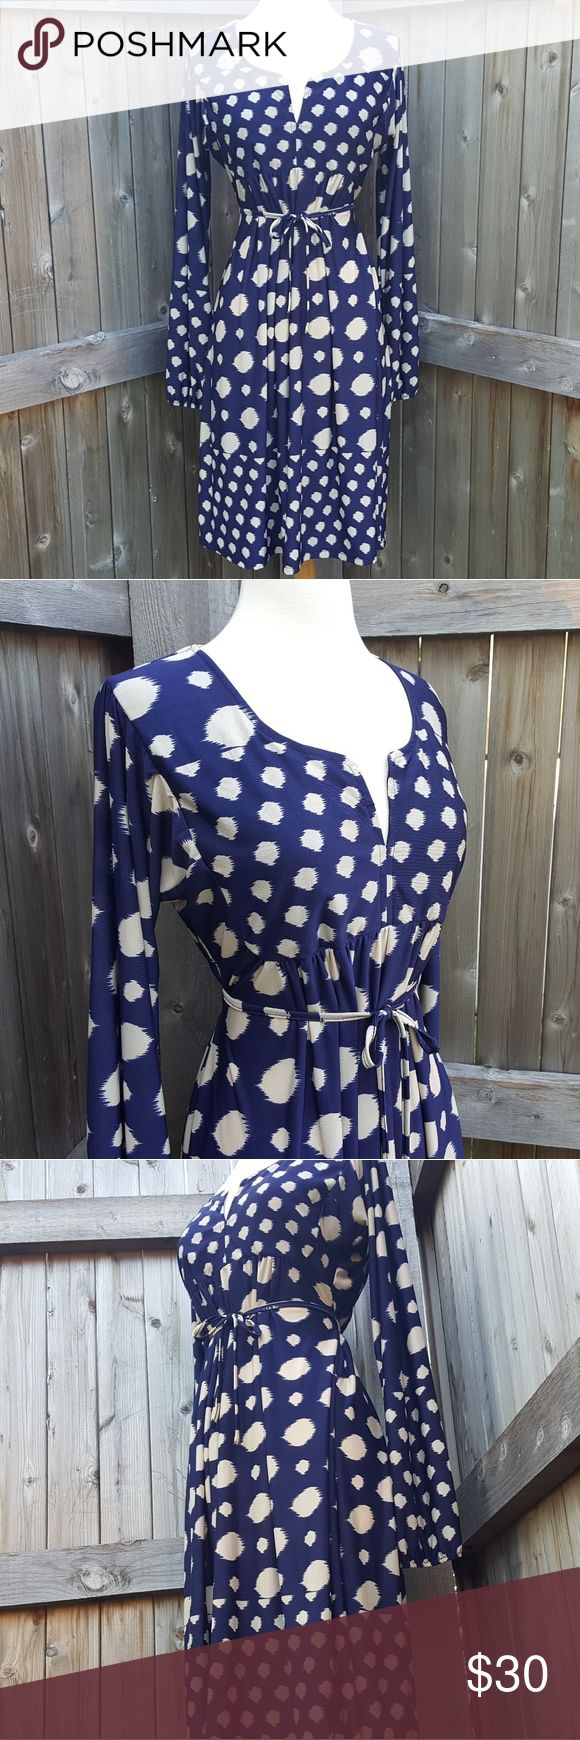 Reborn Navy Blue Polka Dot Long Sleeve Dress L This gorgeous dress features long sleeves and a tie waist. It can be tied in the front or back. It is in good pre-owned condition with only minimal wear. Size large. Reborn Dresses Long Sleeve